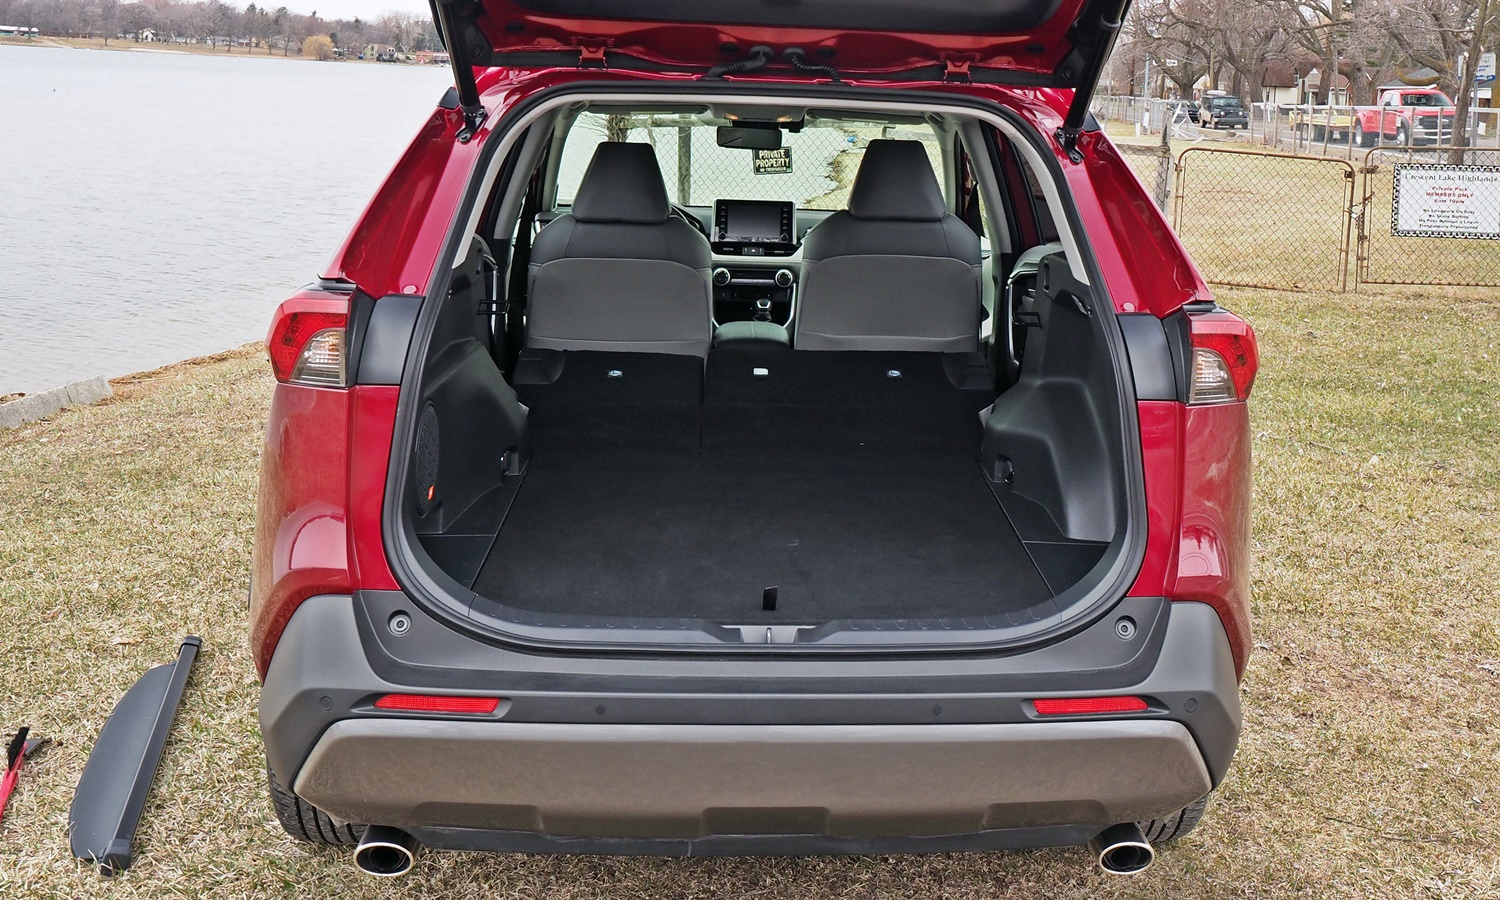 RAV4 Reviews: 2019 Toyota RAV4 cargo area seats folded